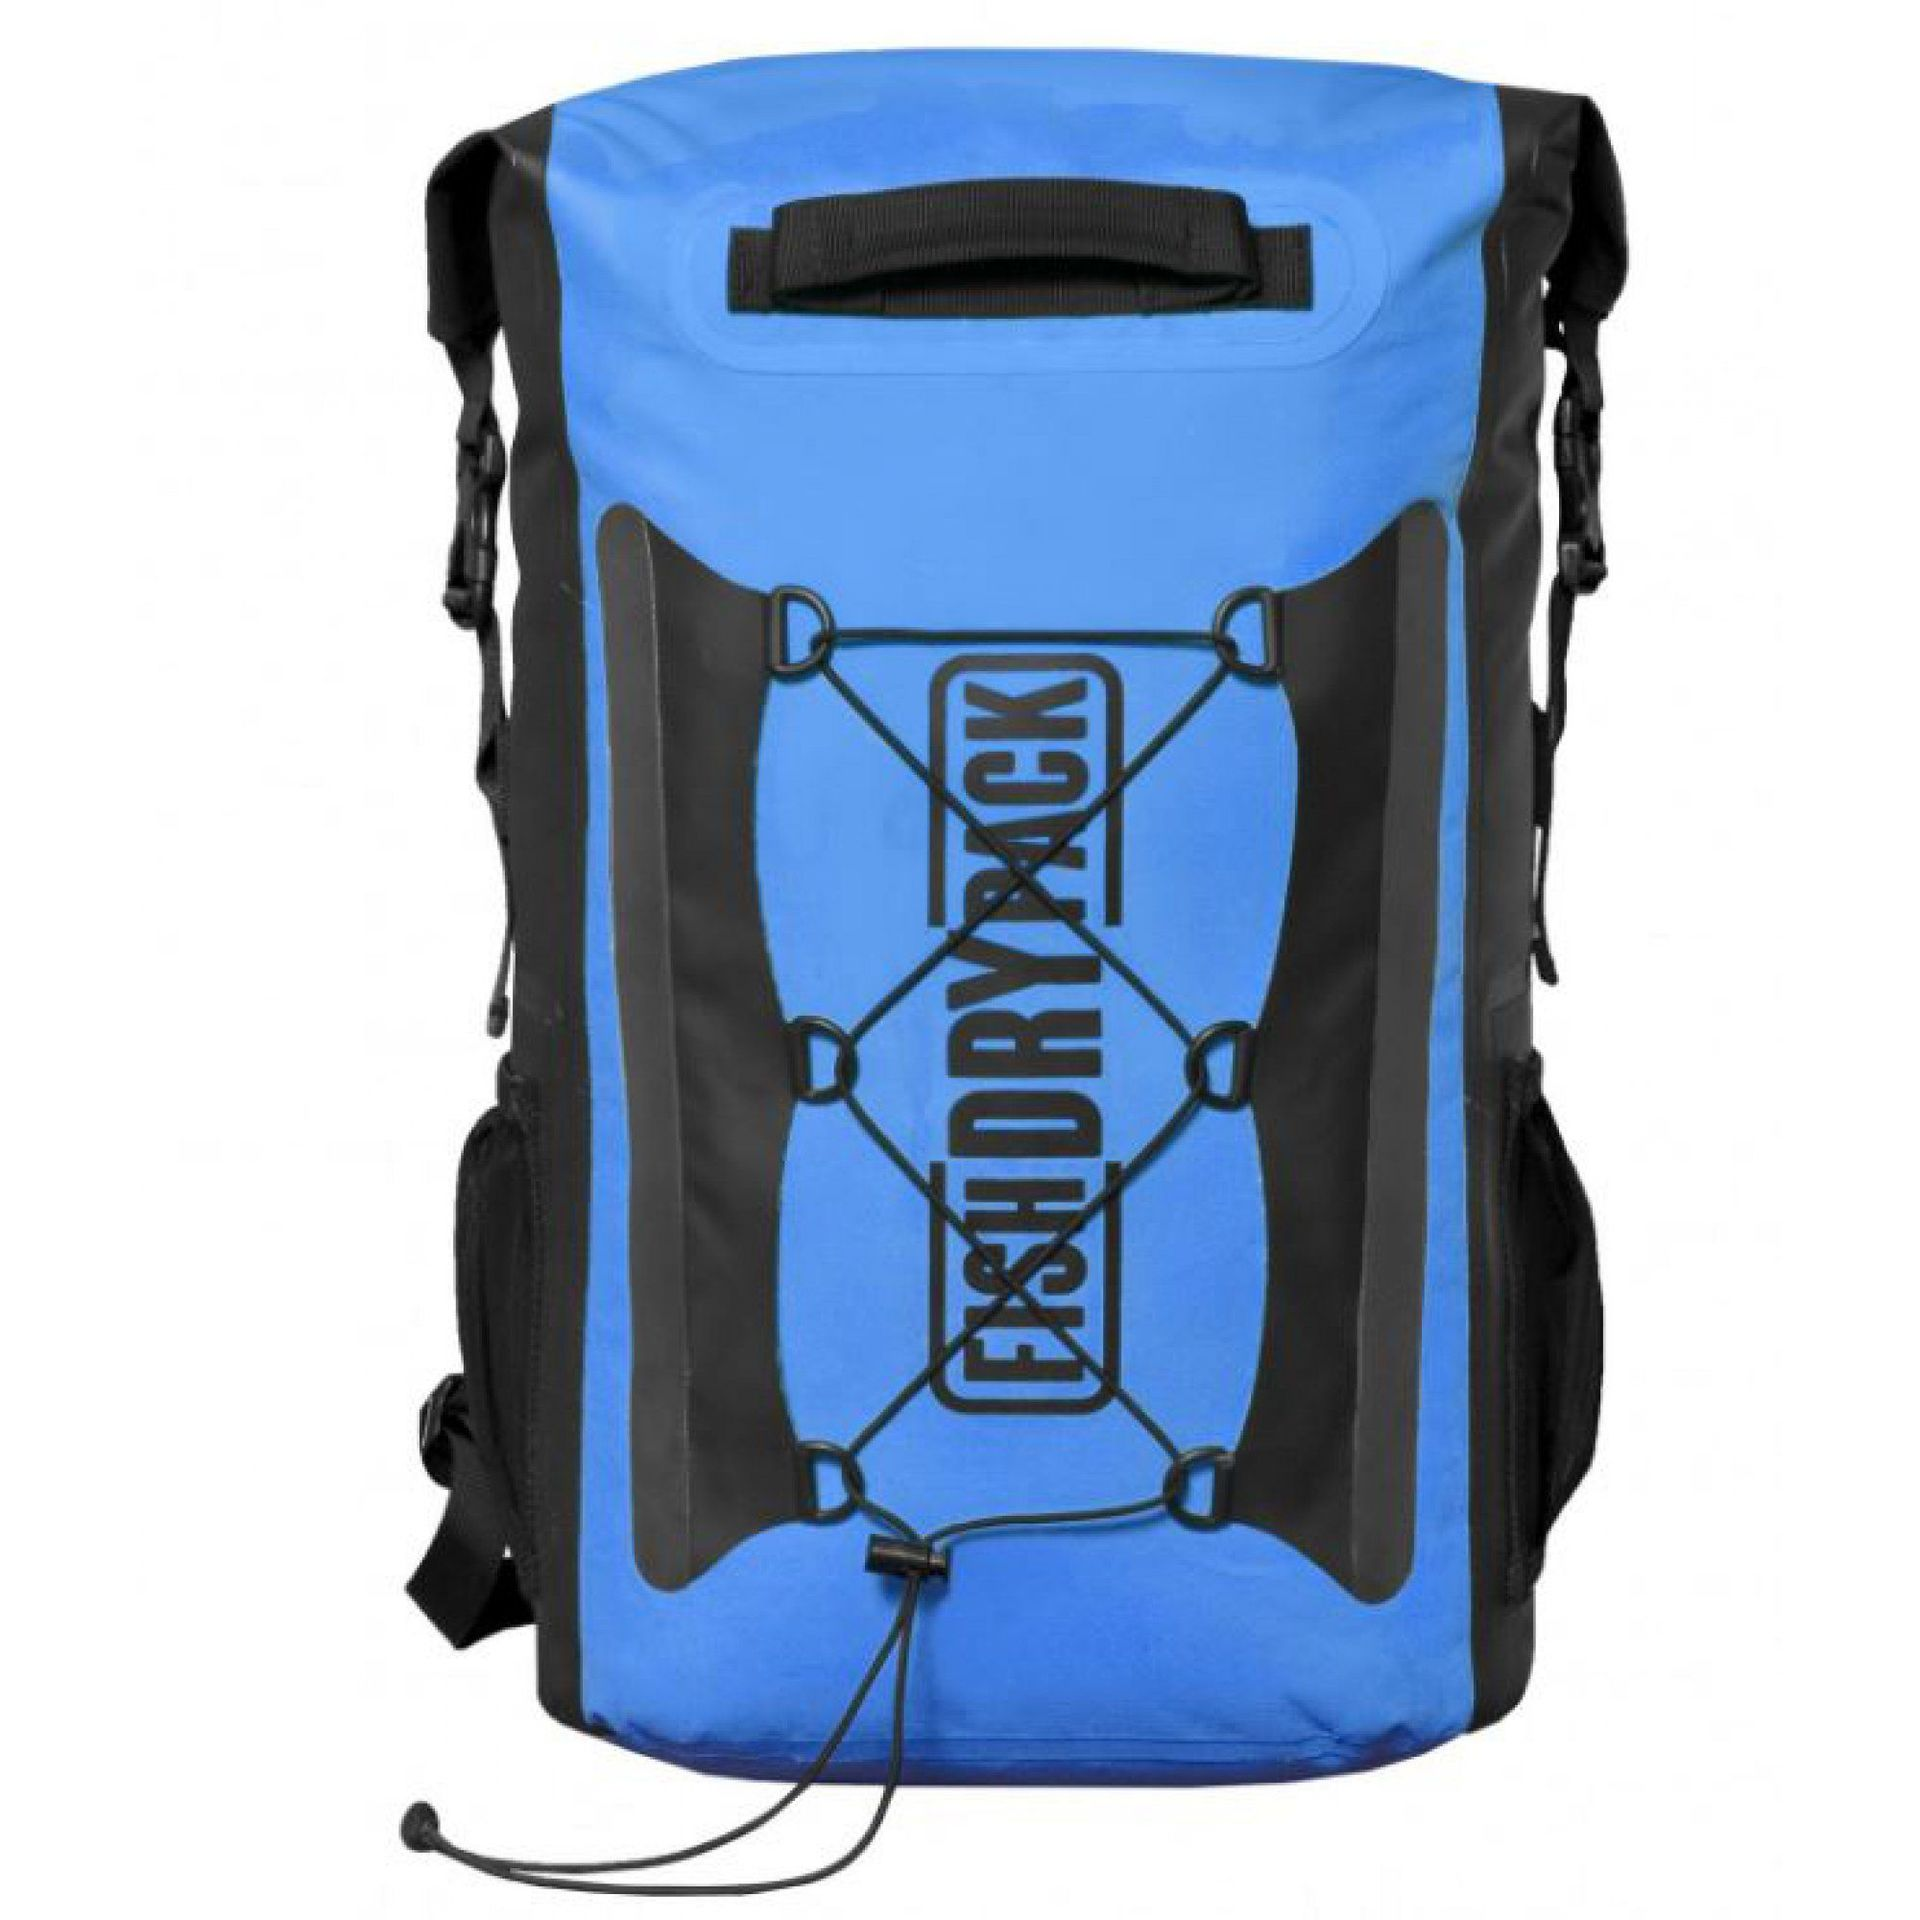 PLECAK FISH SKATEBOARDS FISH DRY PACK EXPLORER 20L BLUE